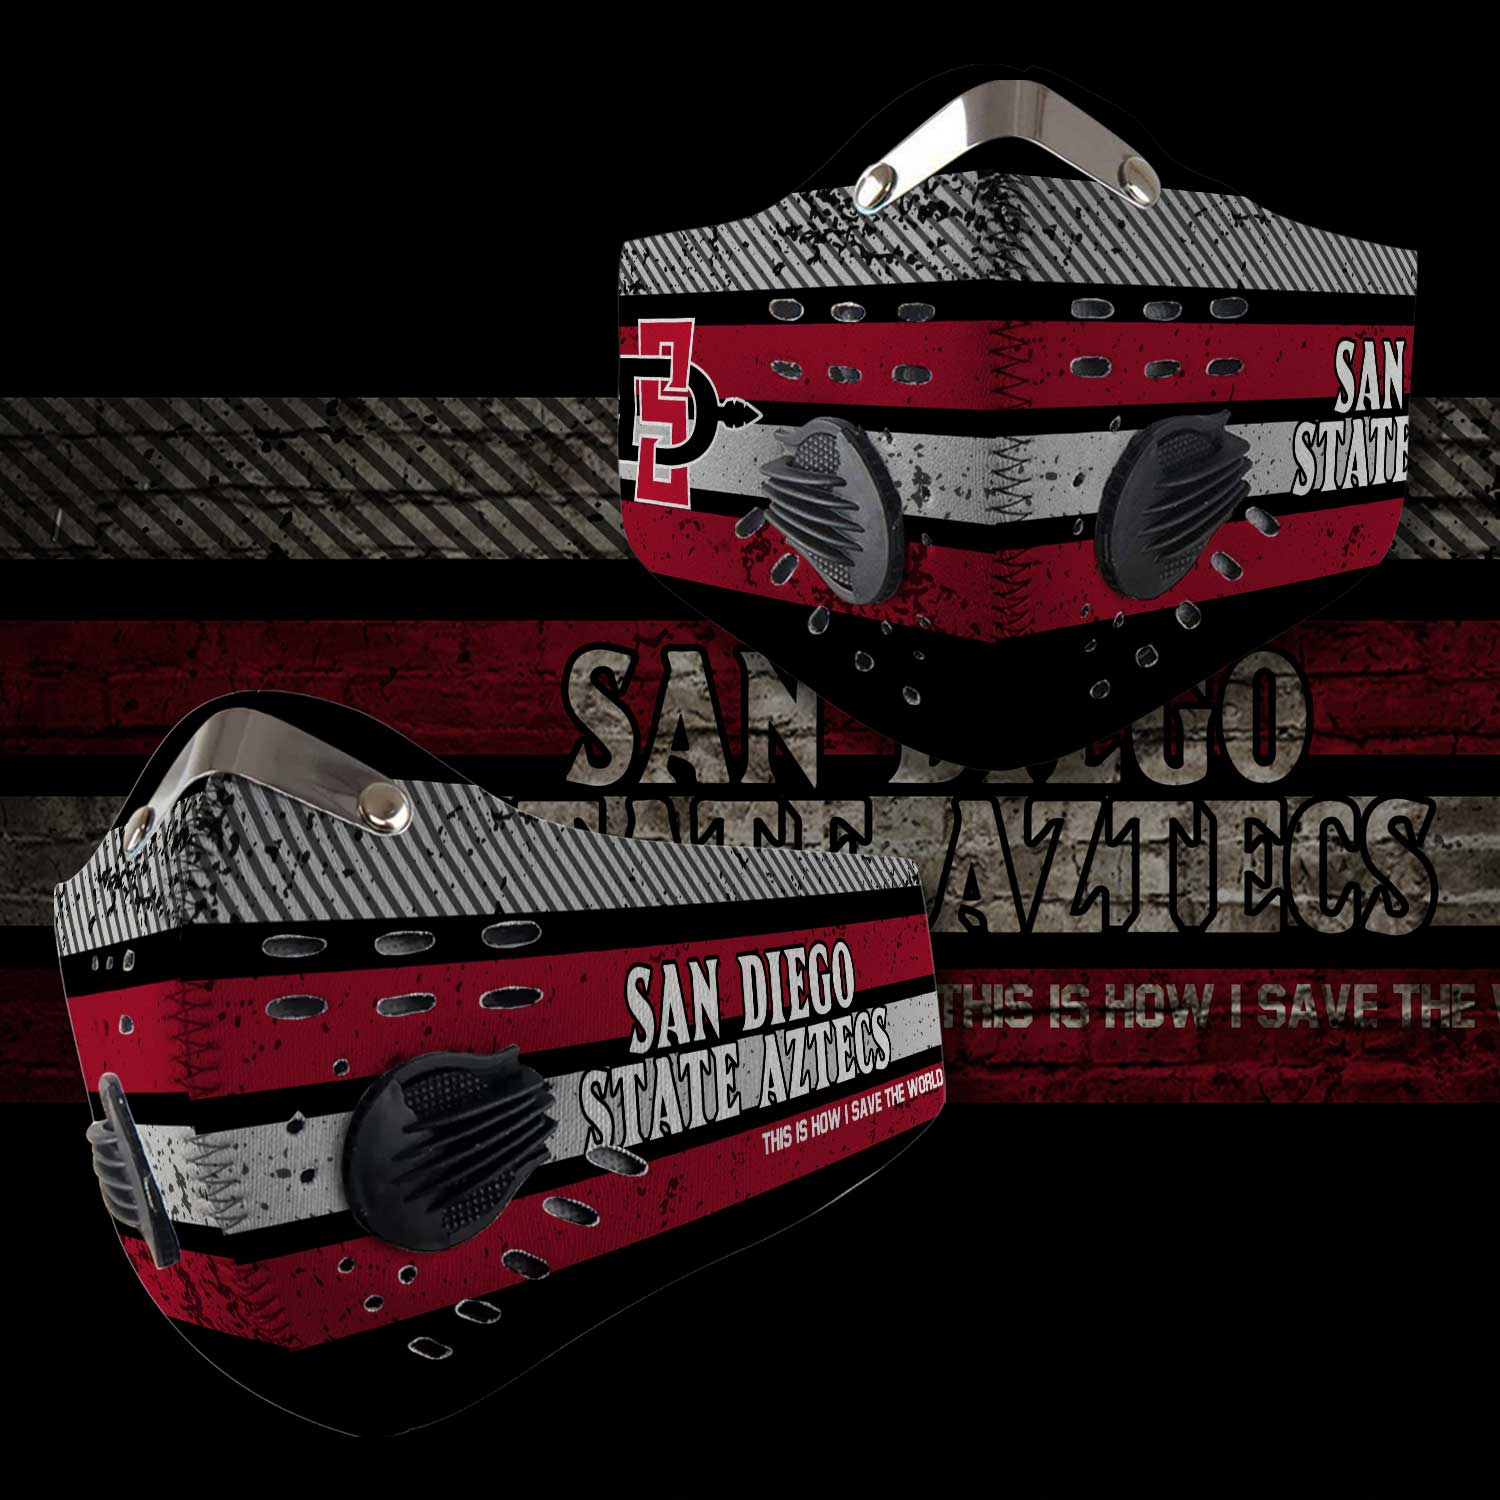 San diego state aztecs this is how i save the world face mask 2